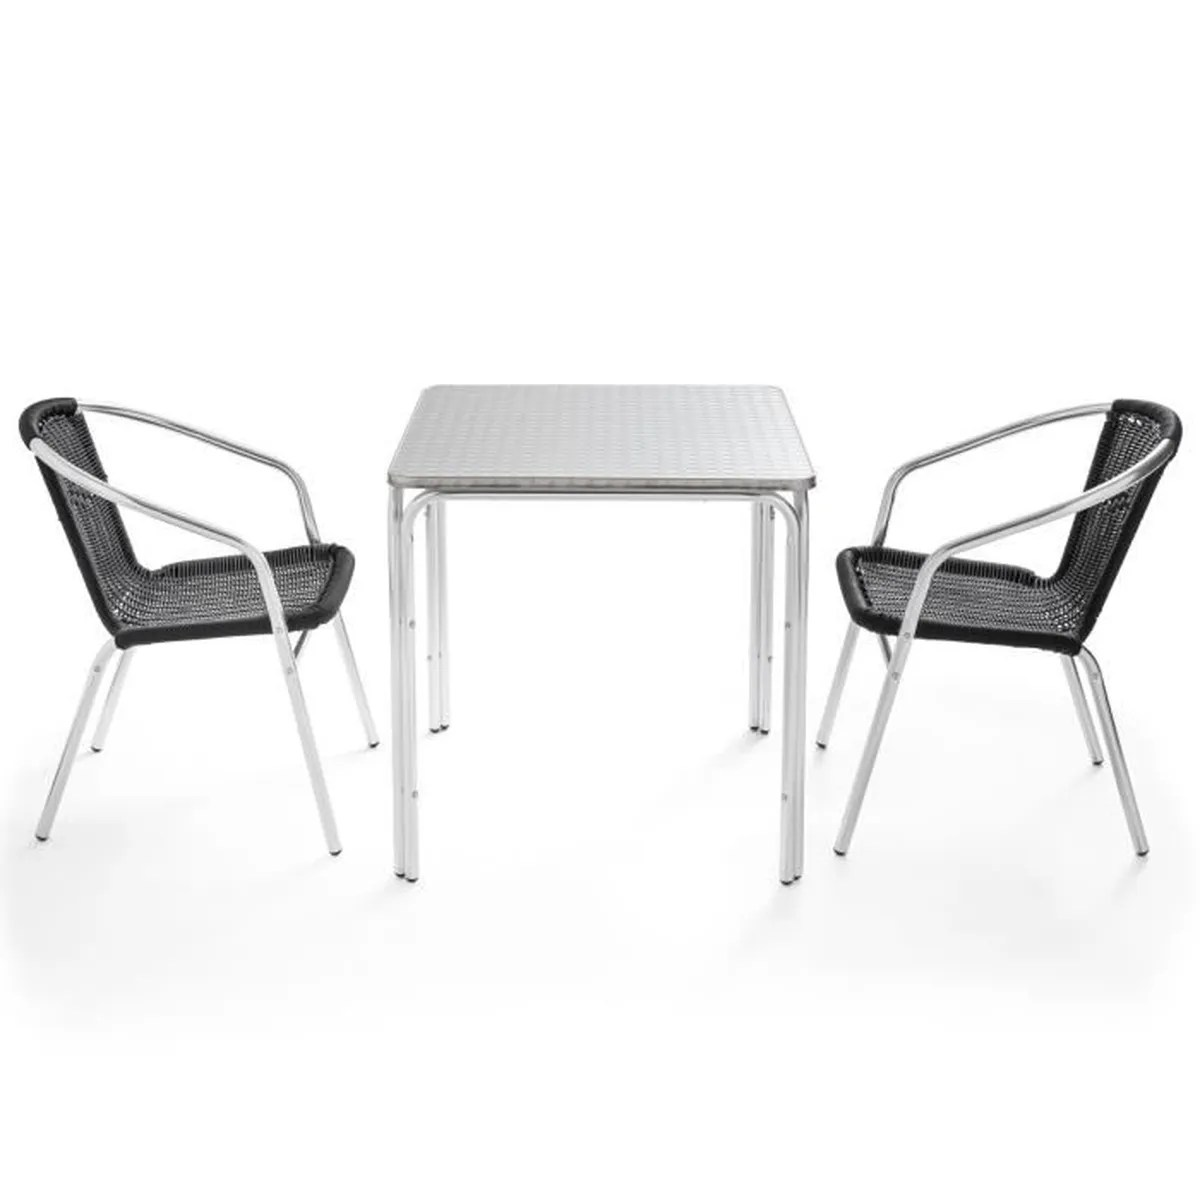 Table Et Chaise Terrasse Ensemble Table Et 2 Chaises De Jardin Style Bistrot Salon